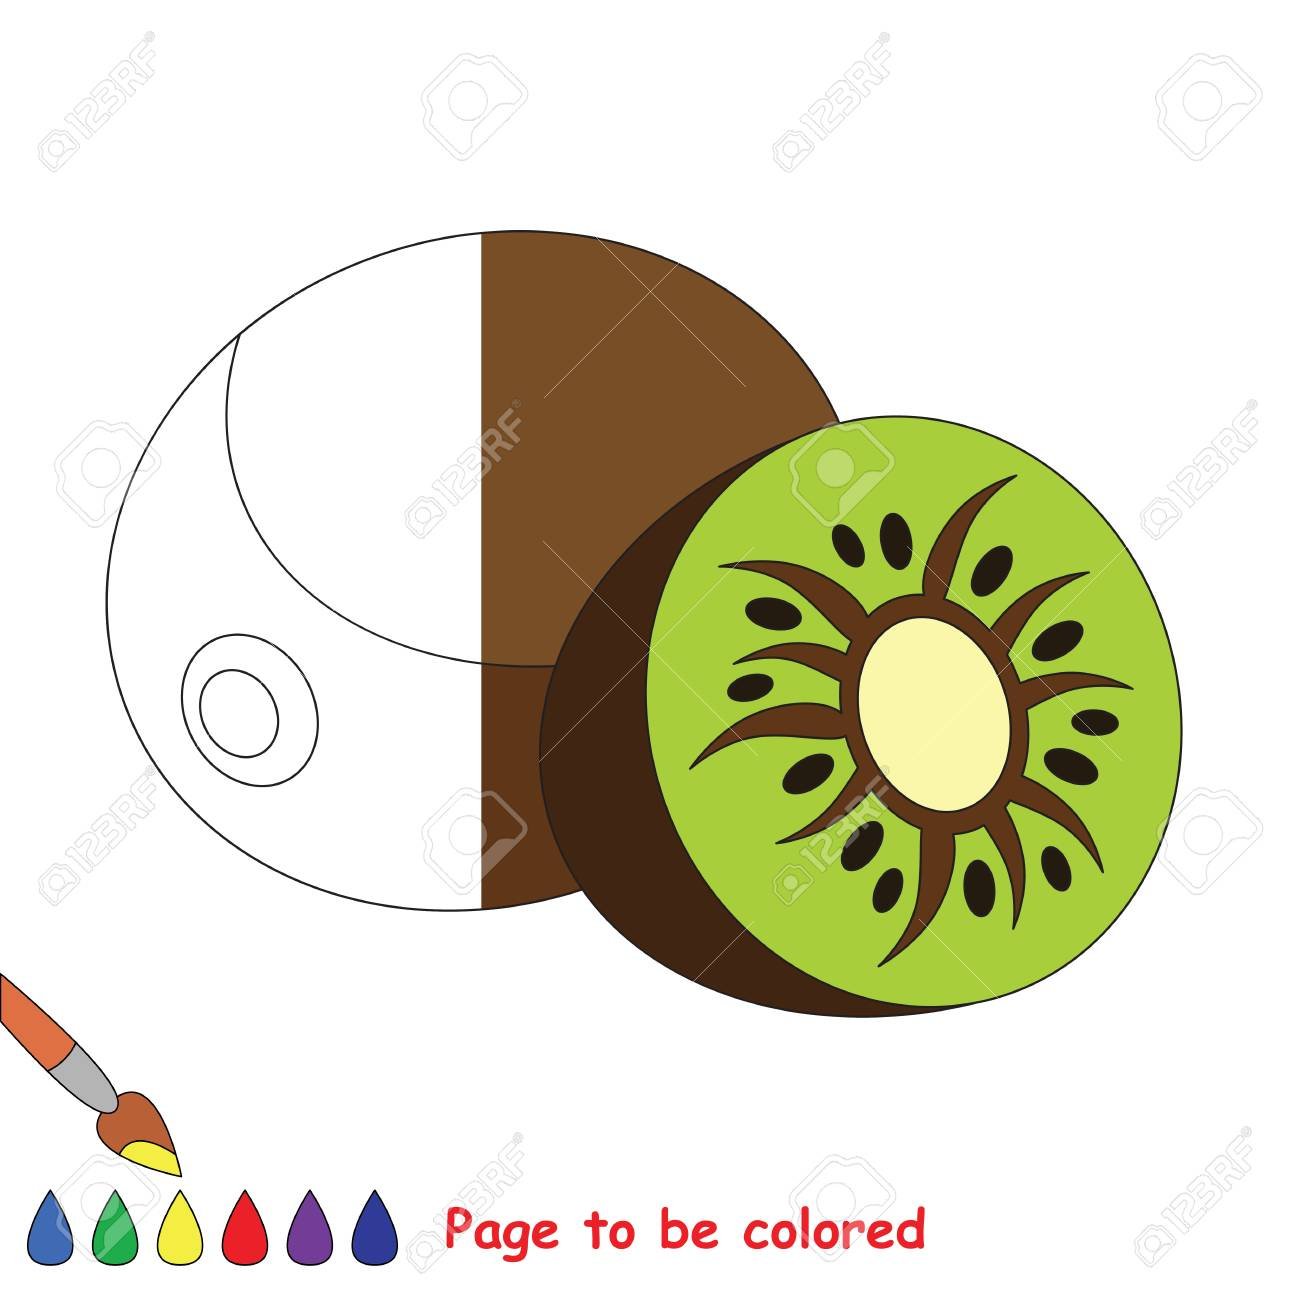 Kiwi To Be Colored, The Coloring Book To Educate Preschool Kids ...